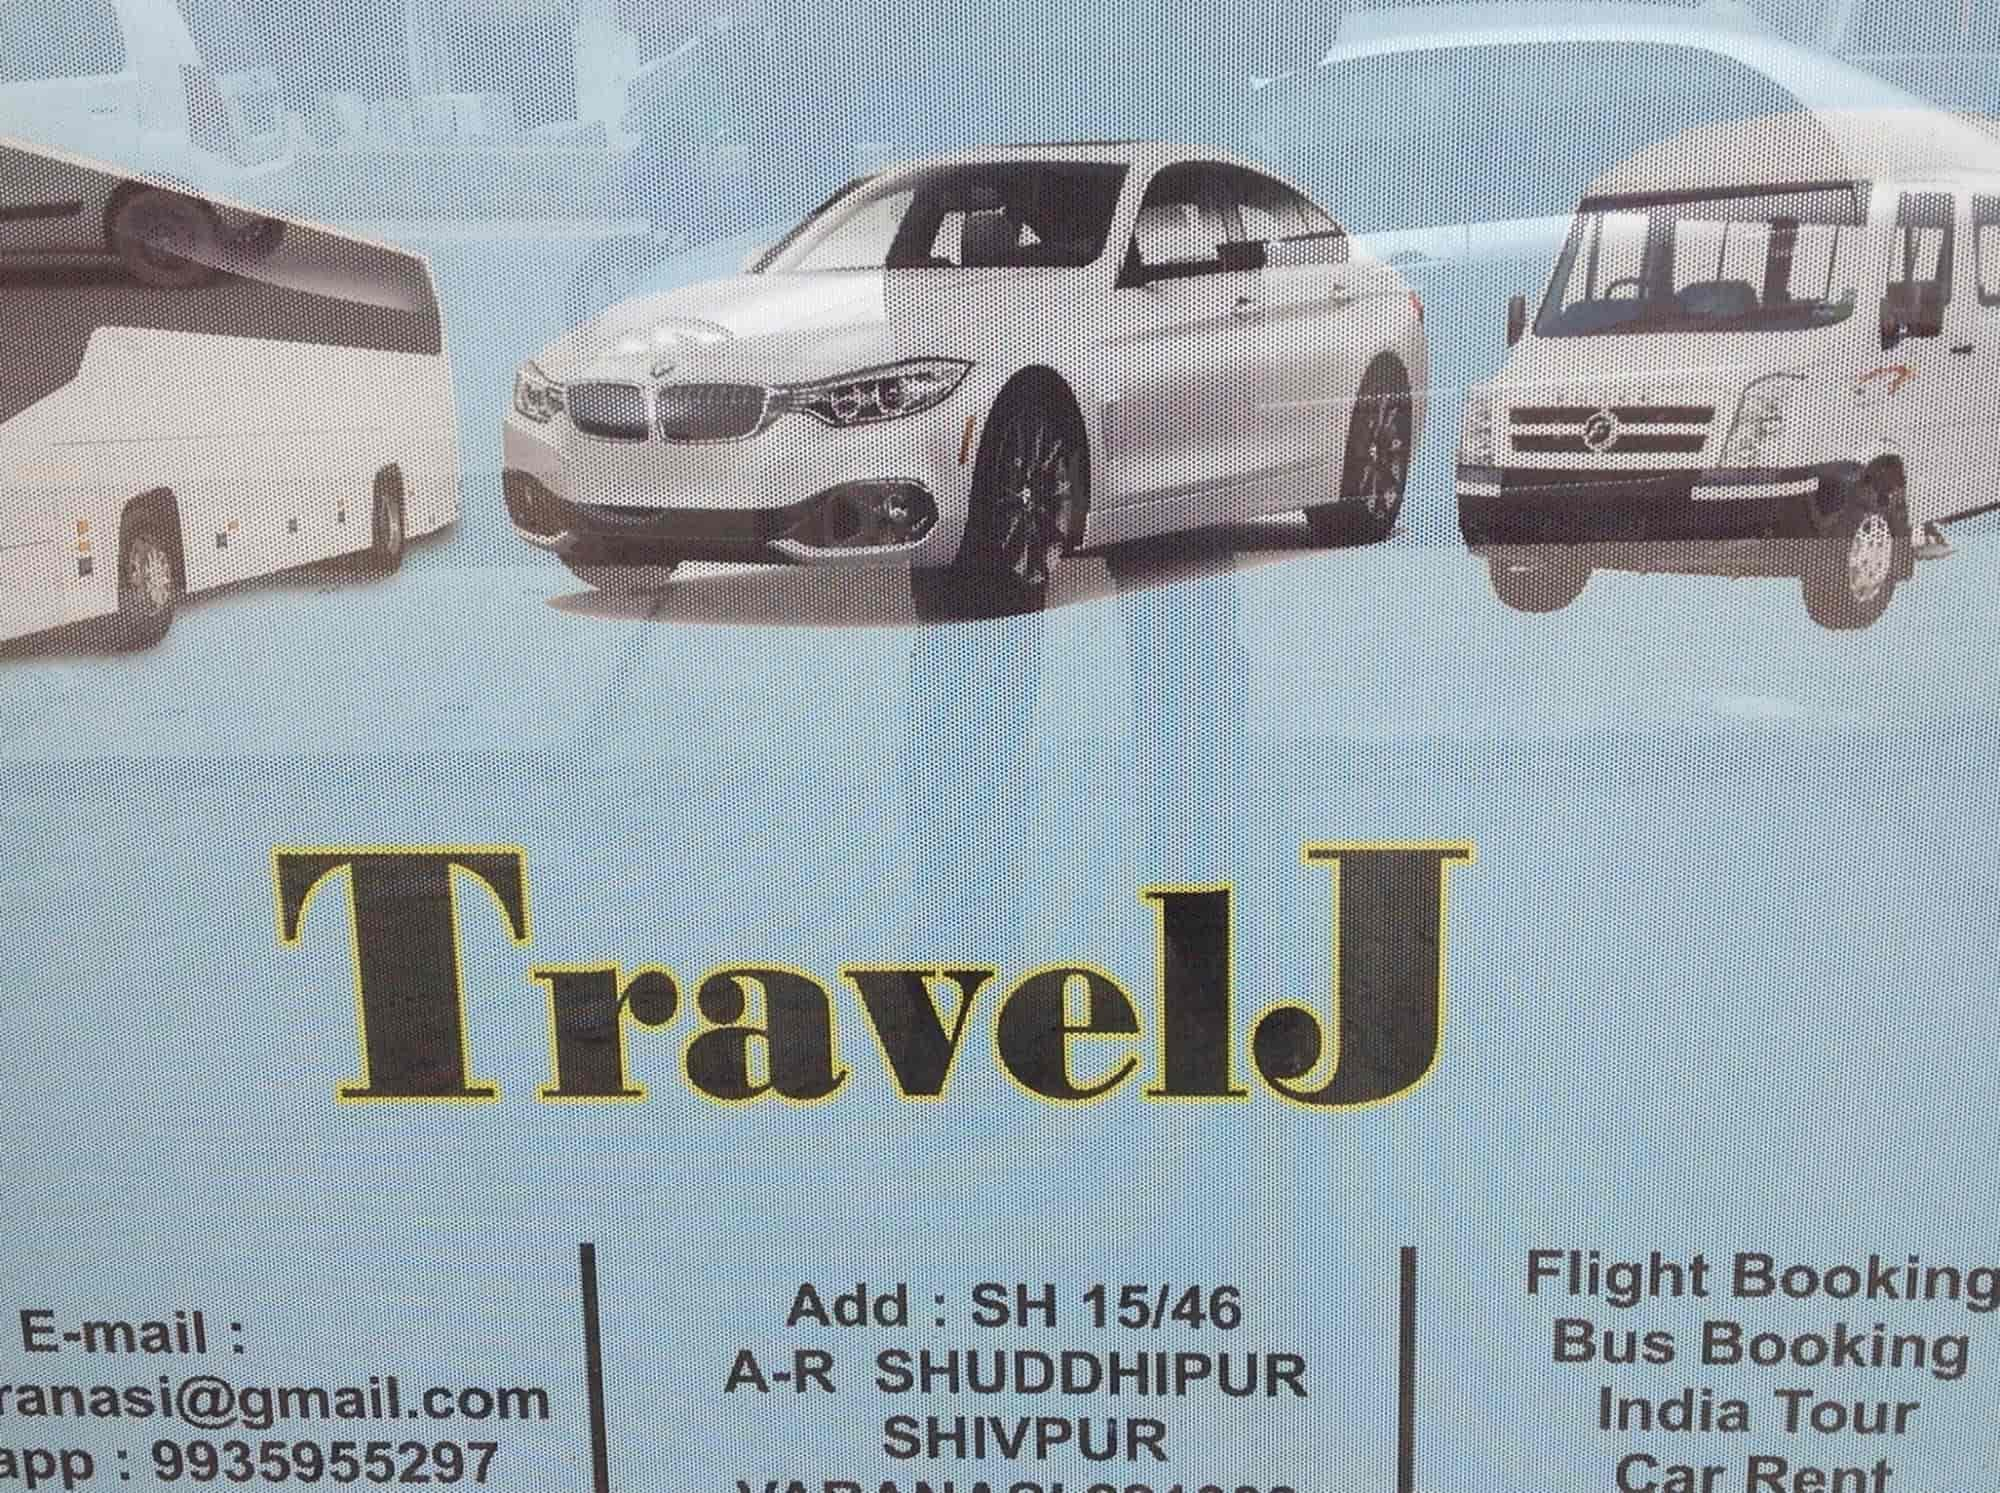 Travelj Photos Shivpur Varanasi Pictures Images Gallery Justdial